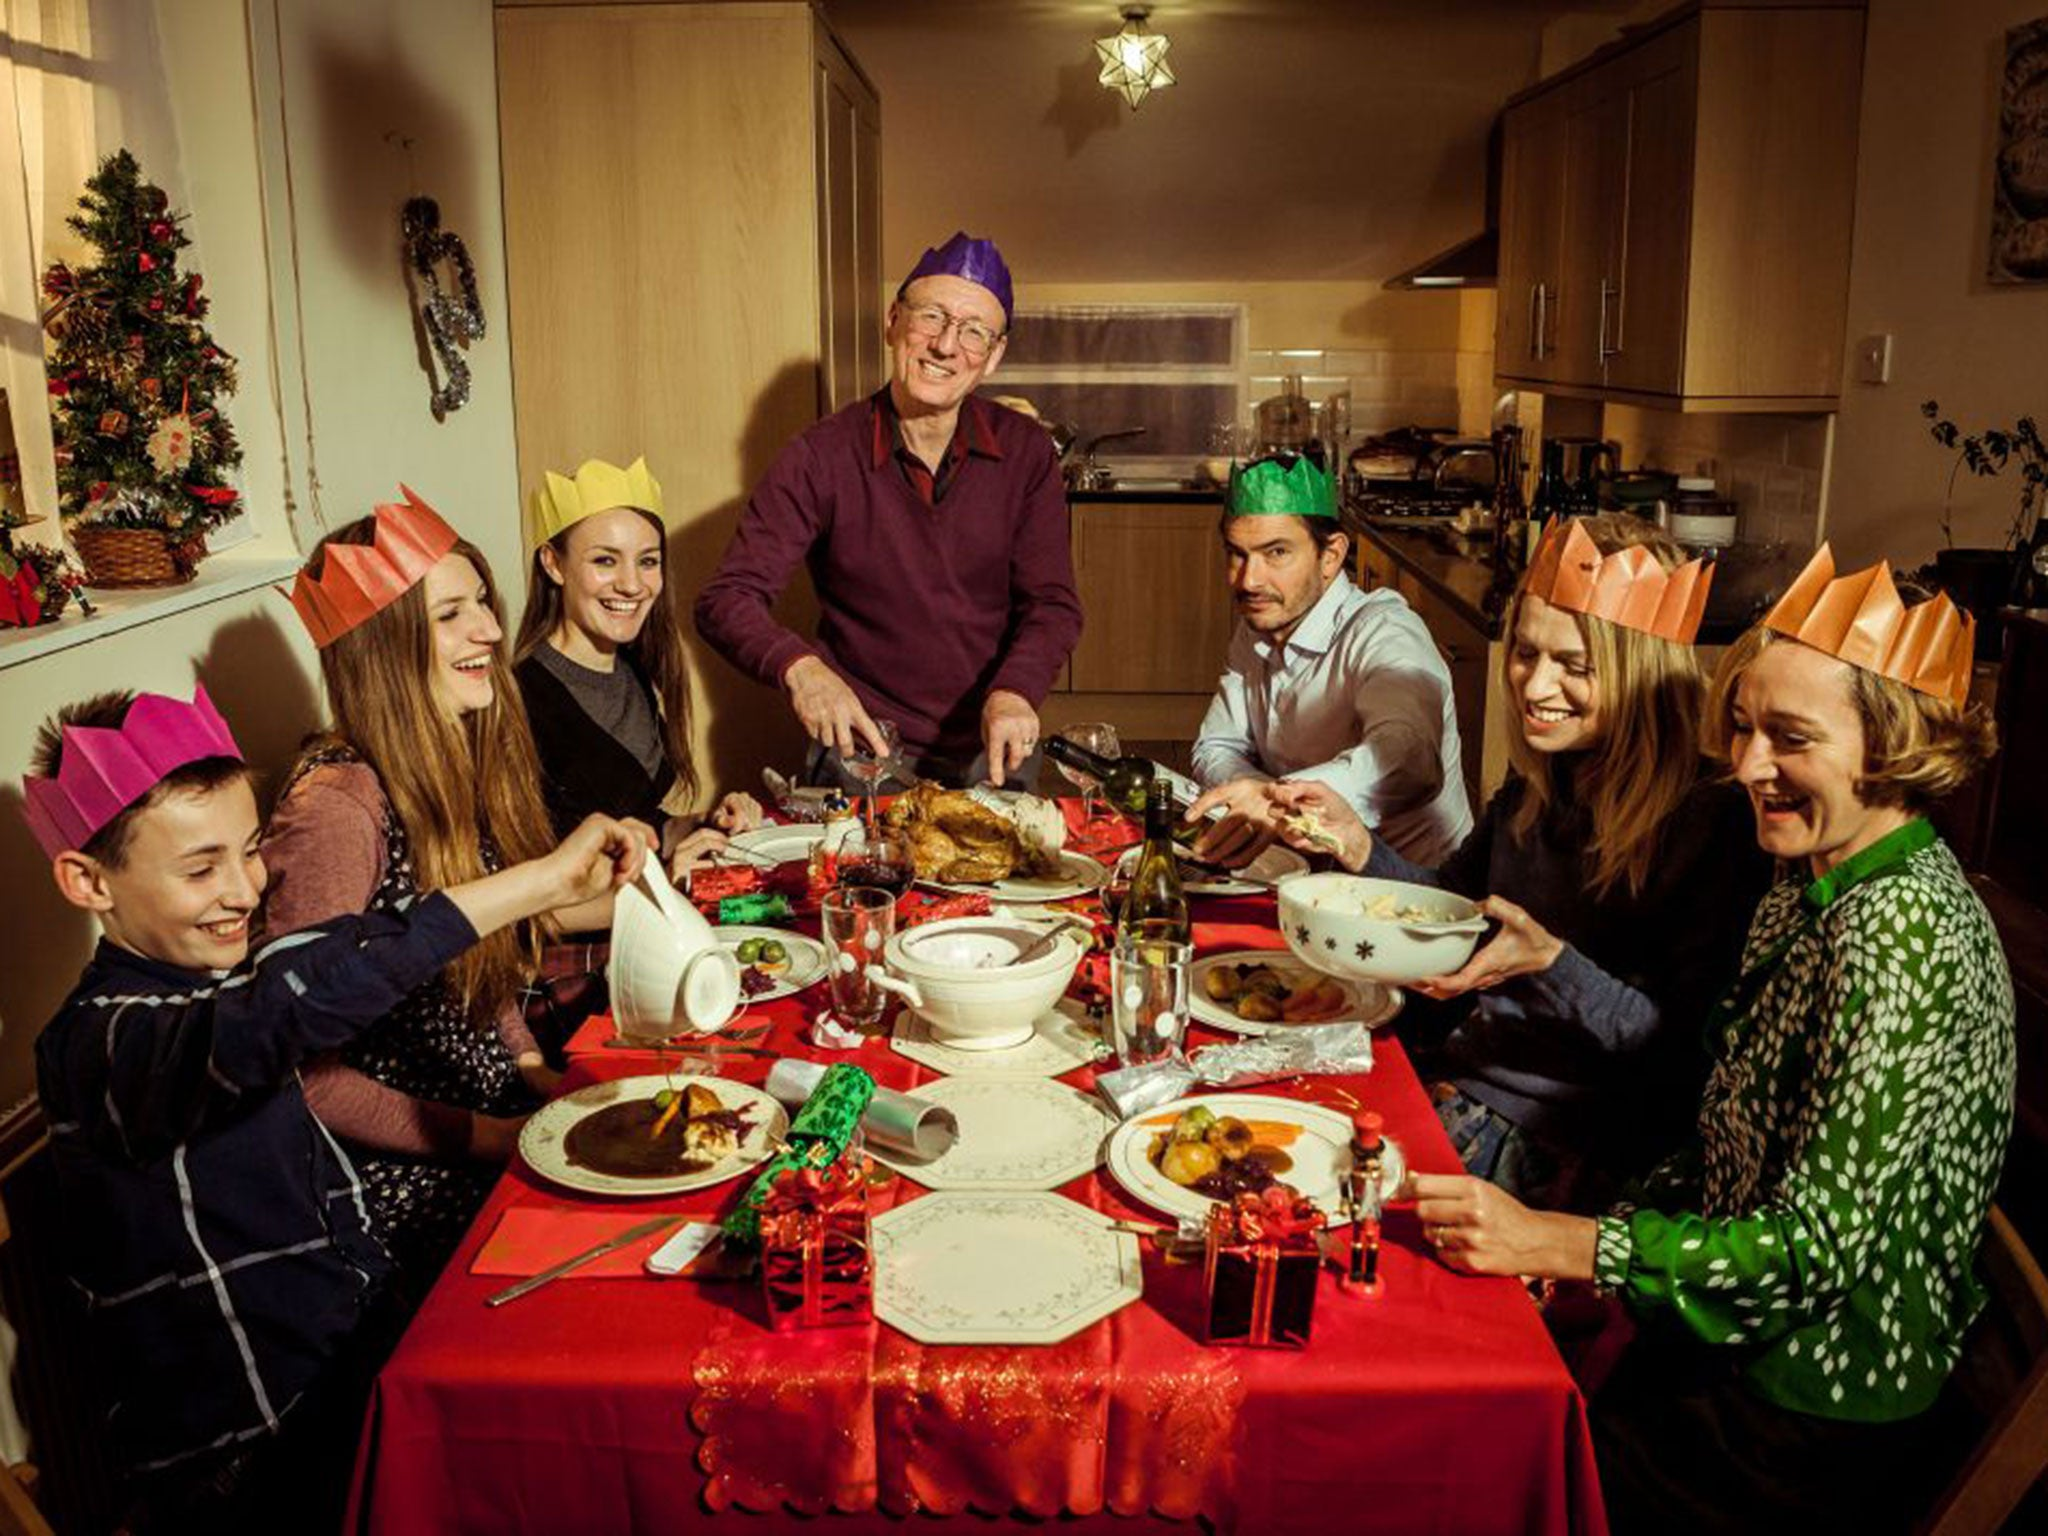 Christmas dinner is £5 cheaper this year as food prices fall ...